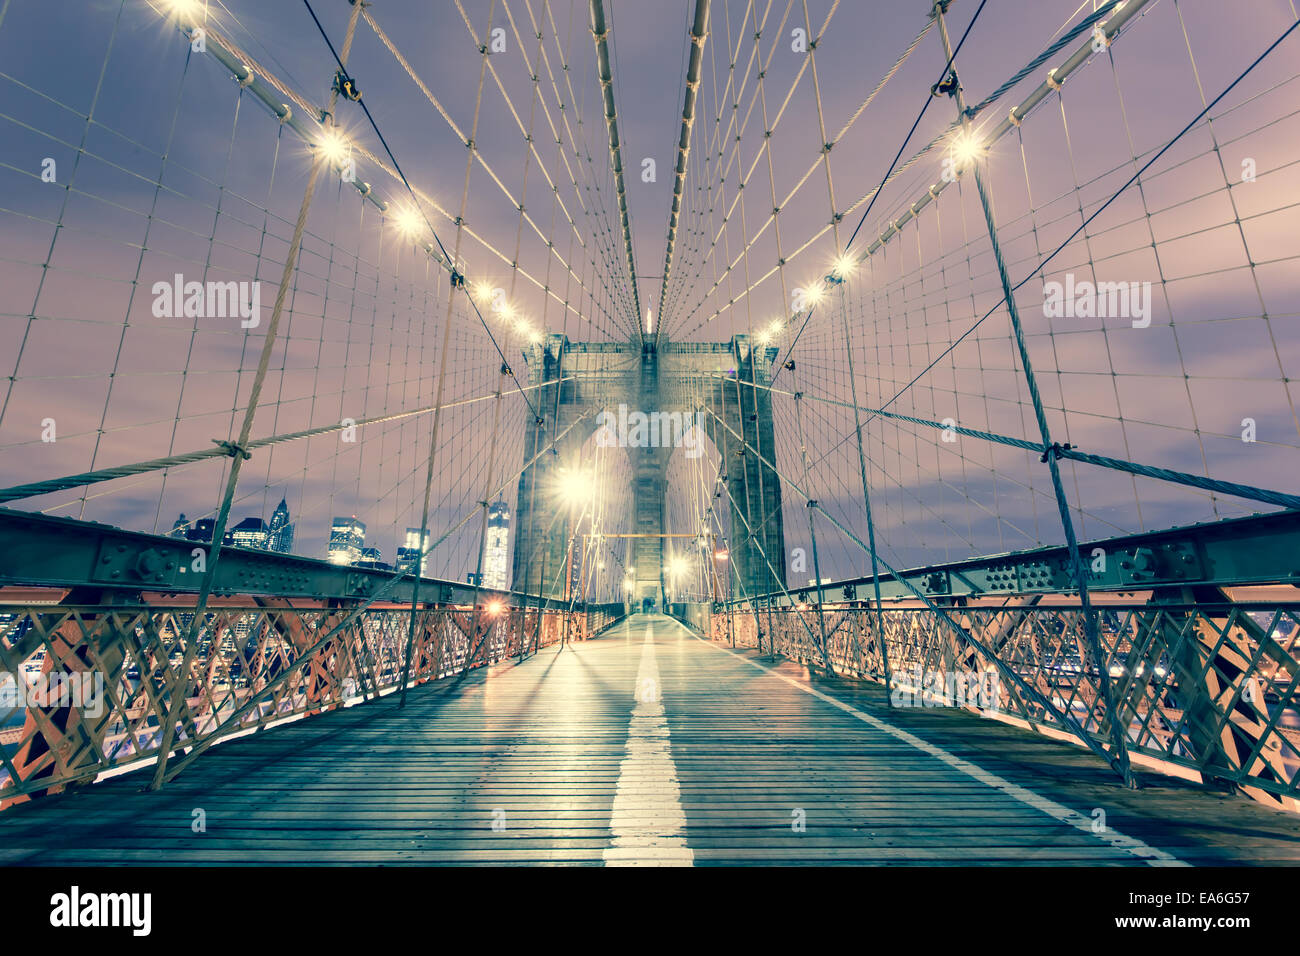 USA, New York State, New York City, Blick auf Brooklyn Bridge Stockbild